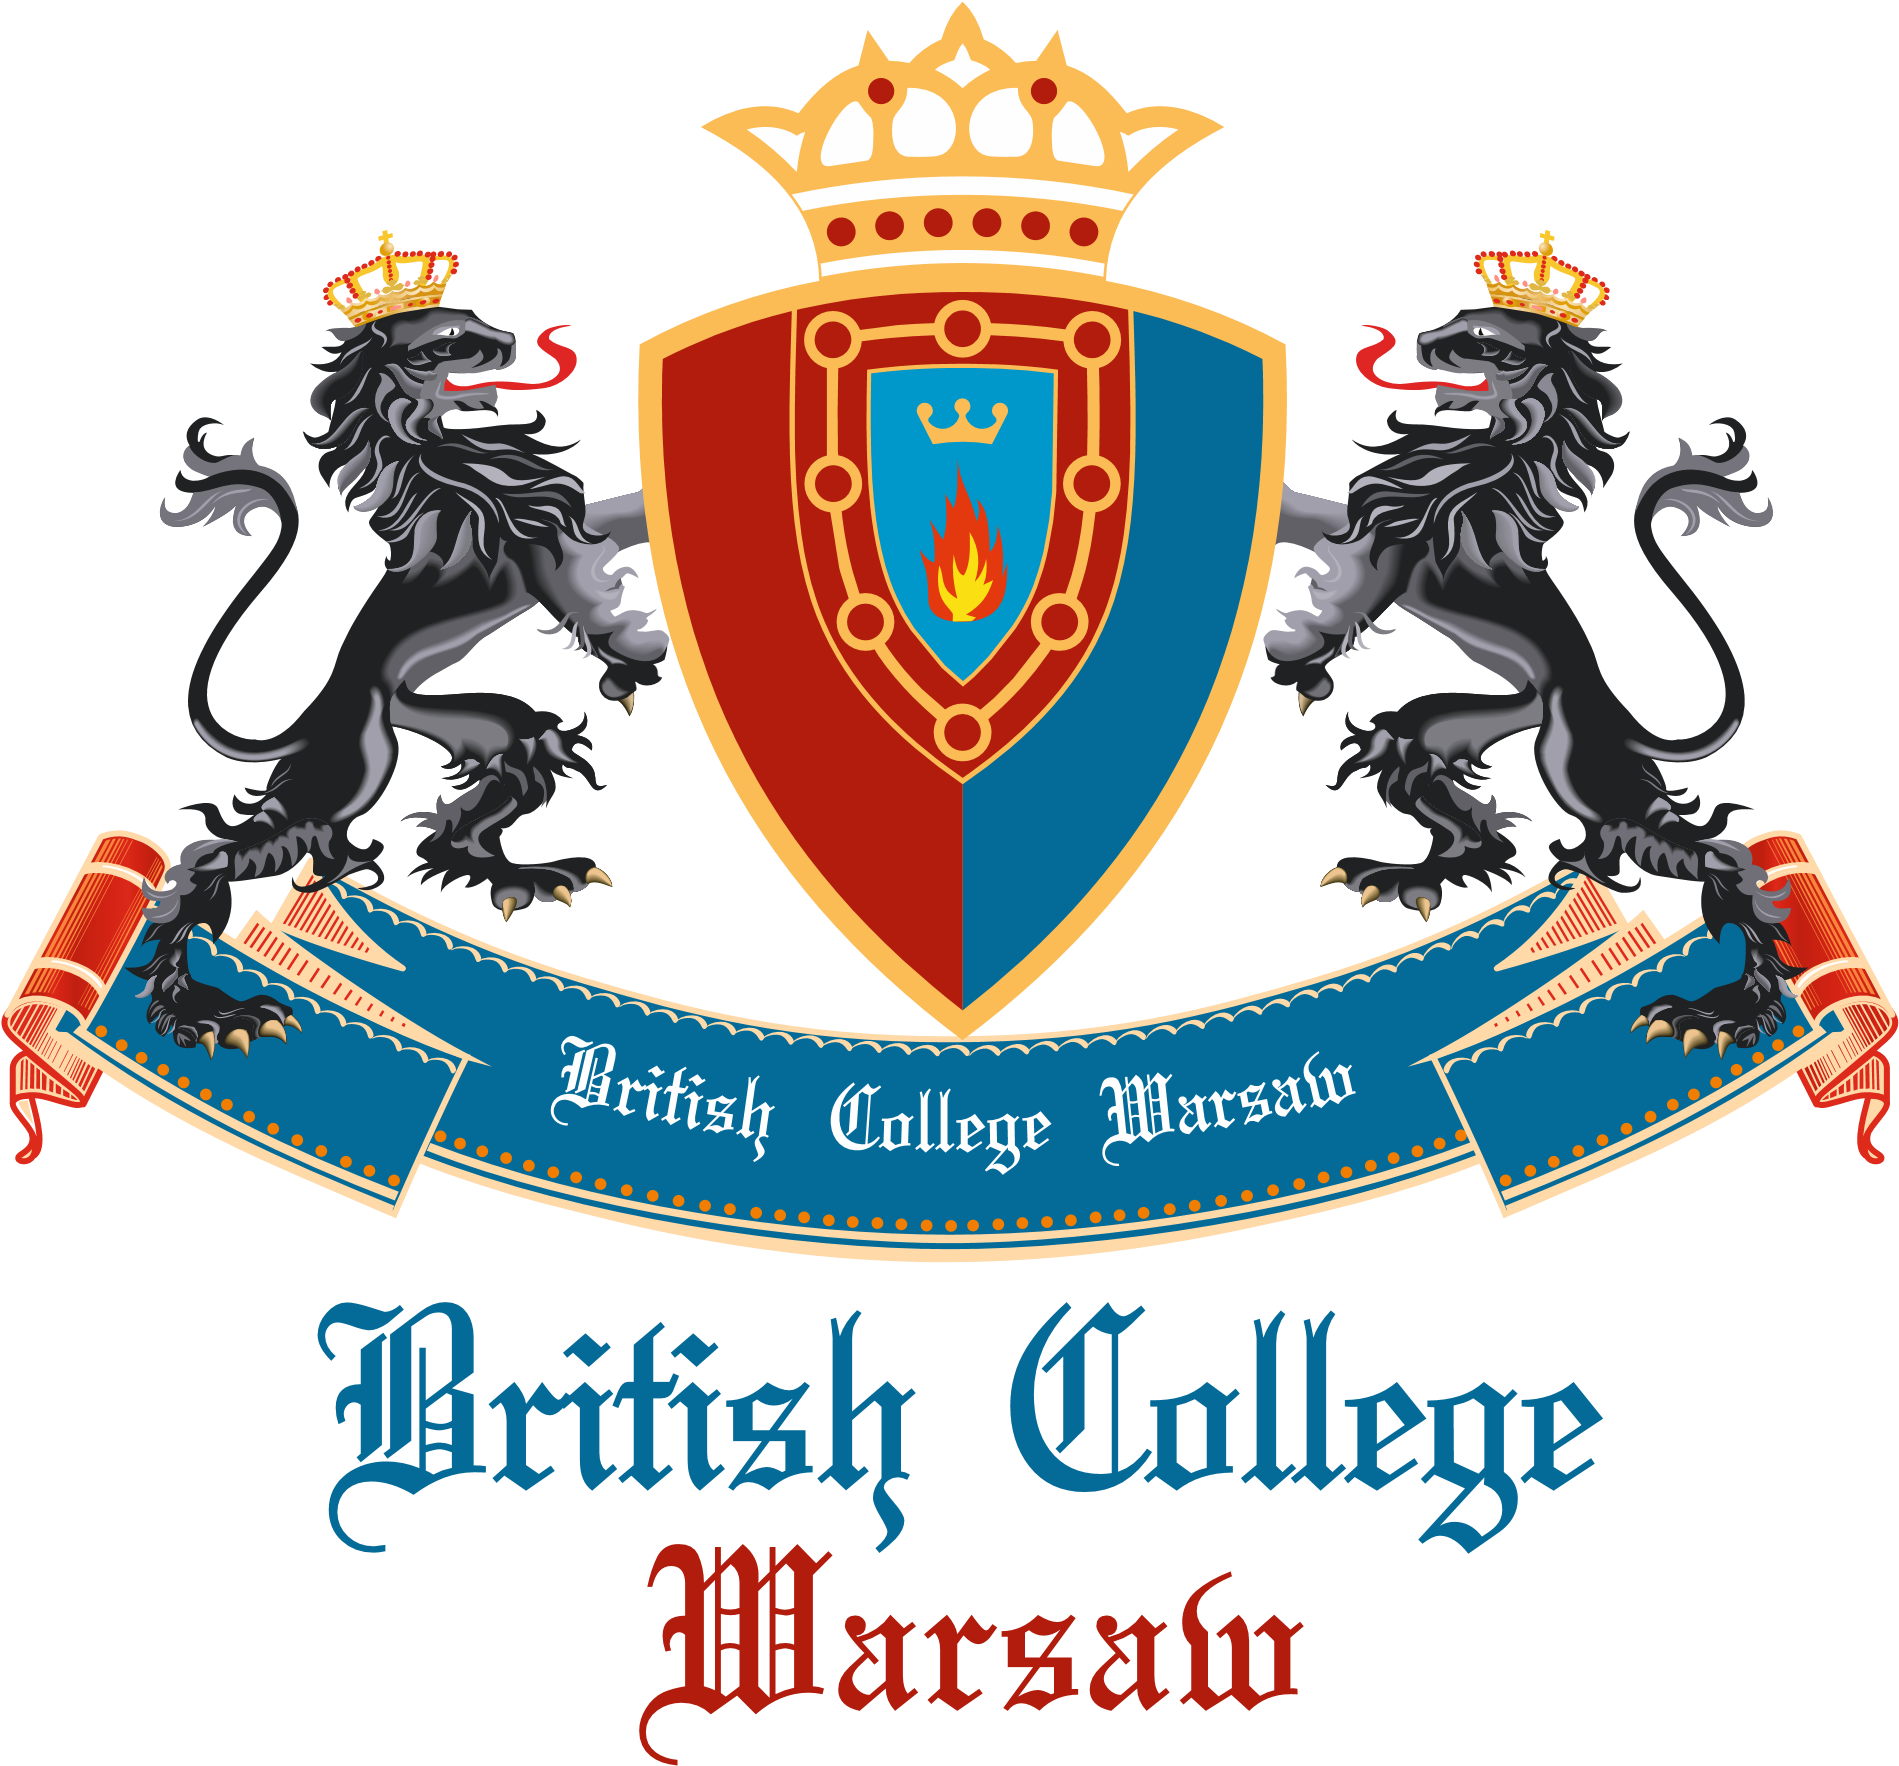 British College Warsaw